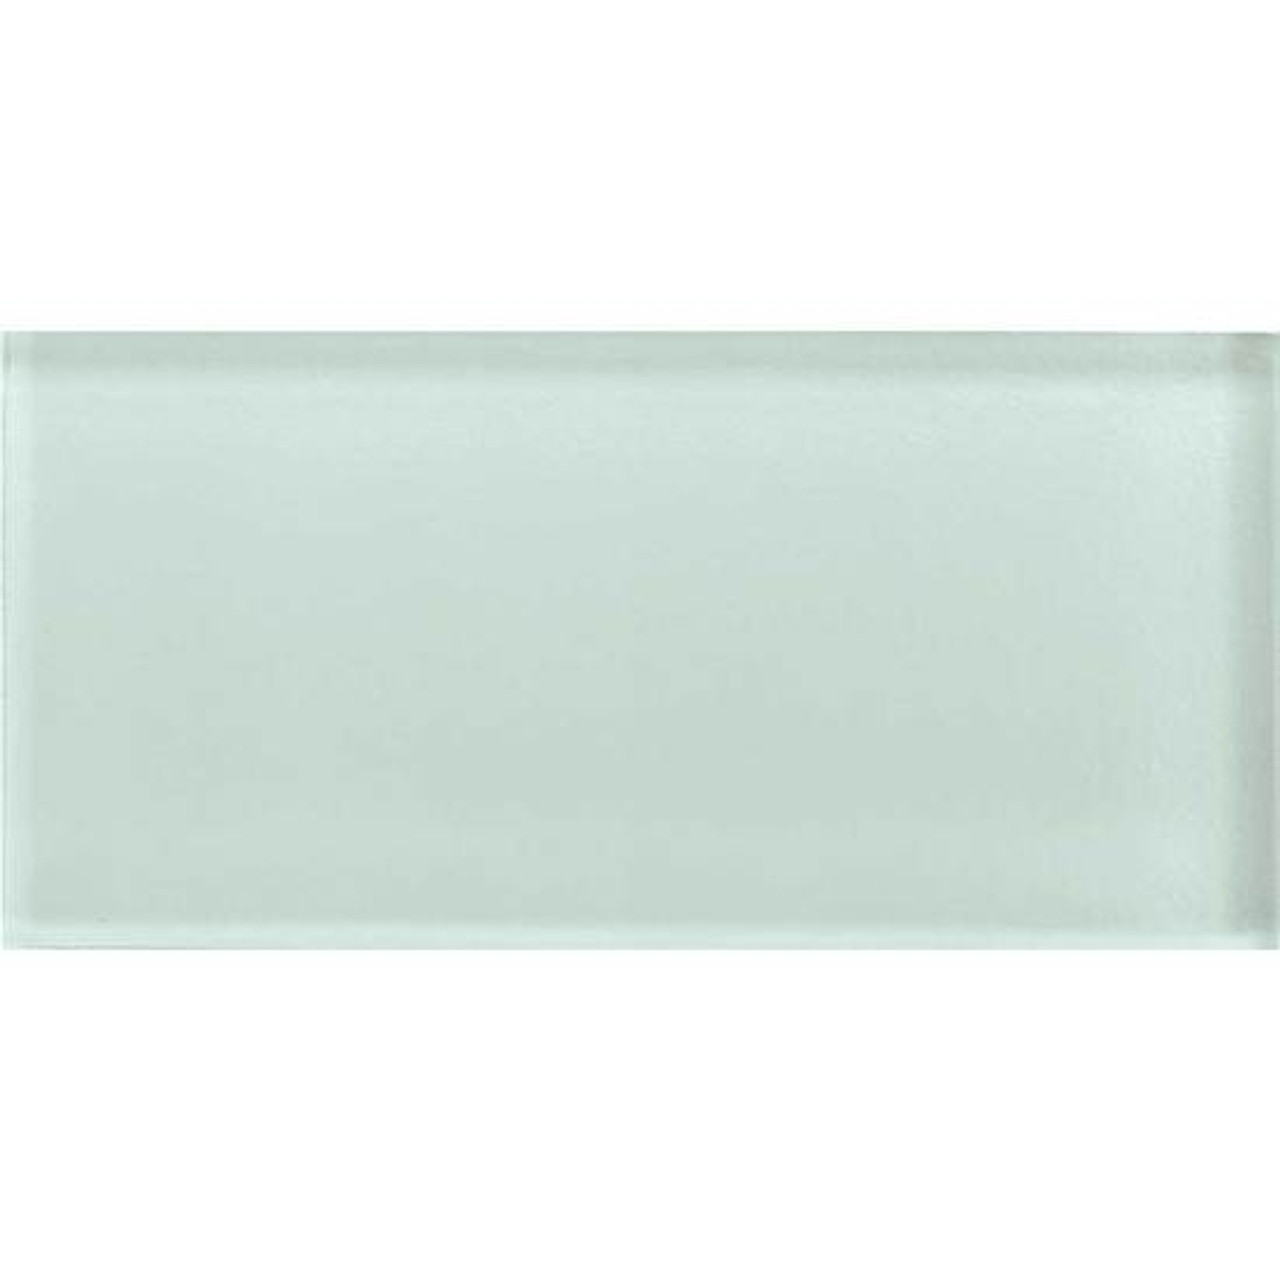 american olean color appeal glass c107 vintage mint 3x6 brick subway glass tile glossy